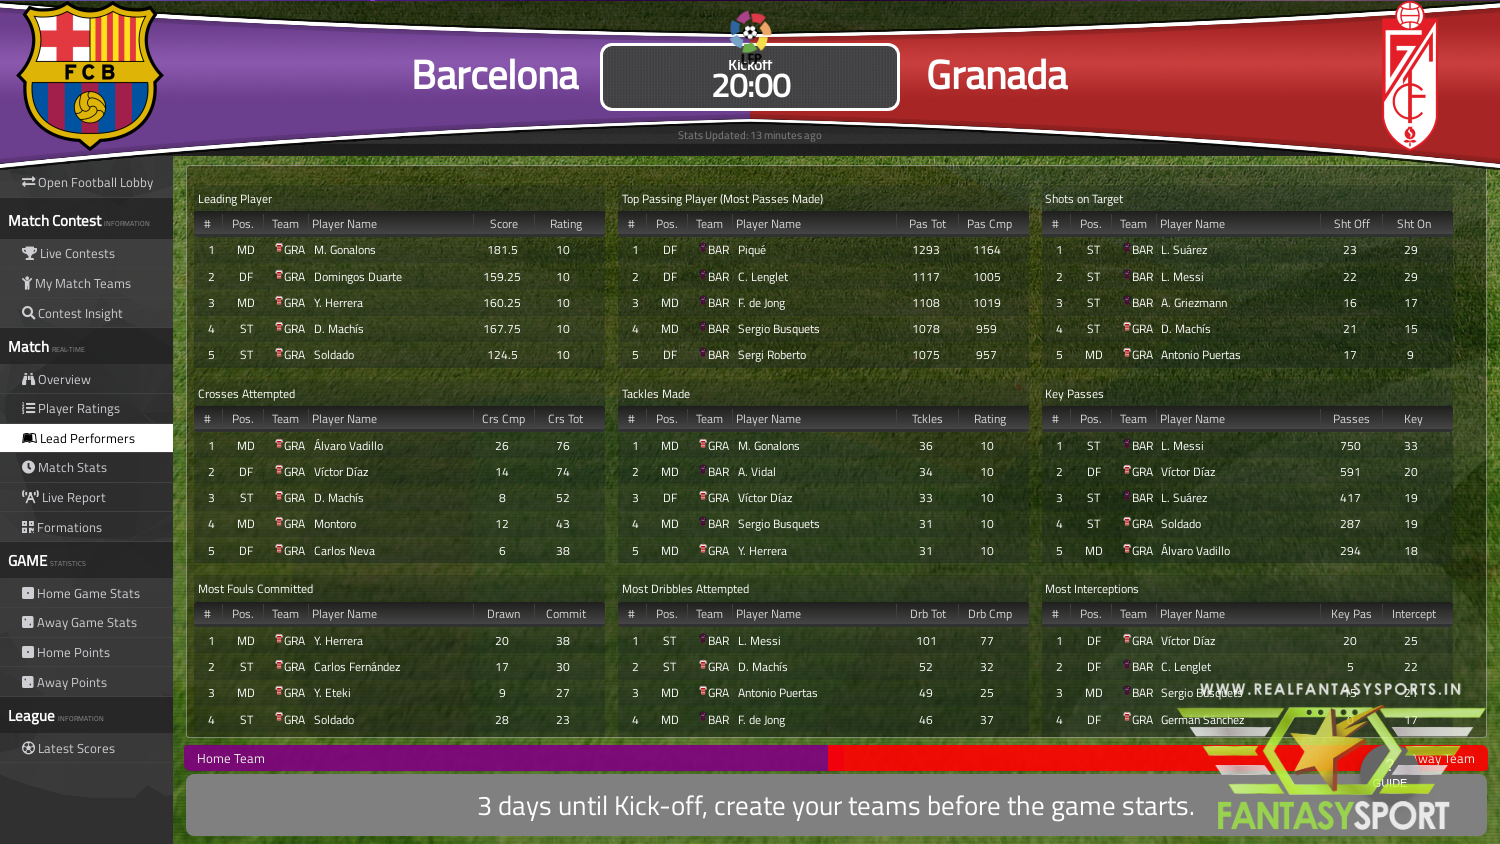 Barcelona vs Granada match prediction (19th January 2020)